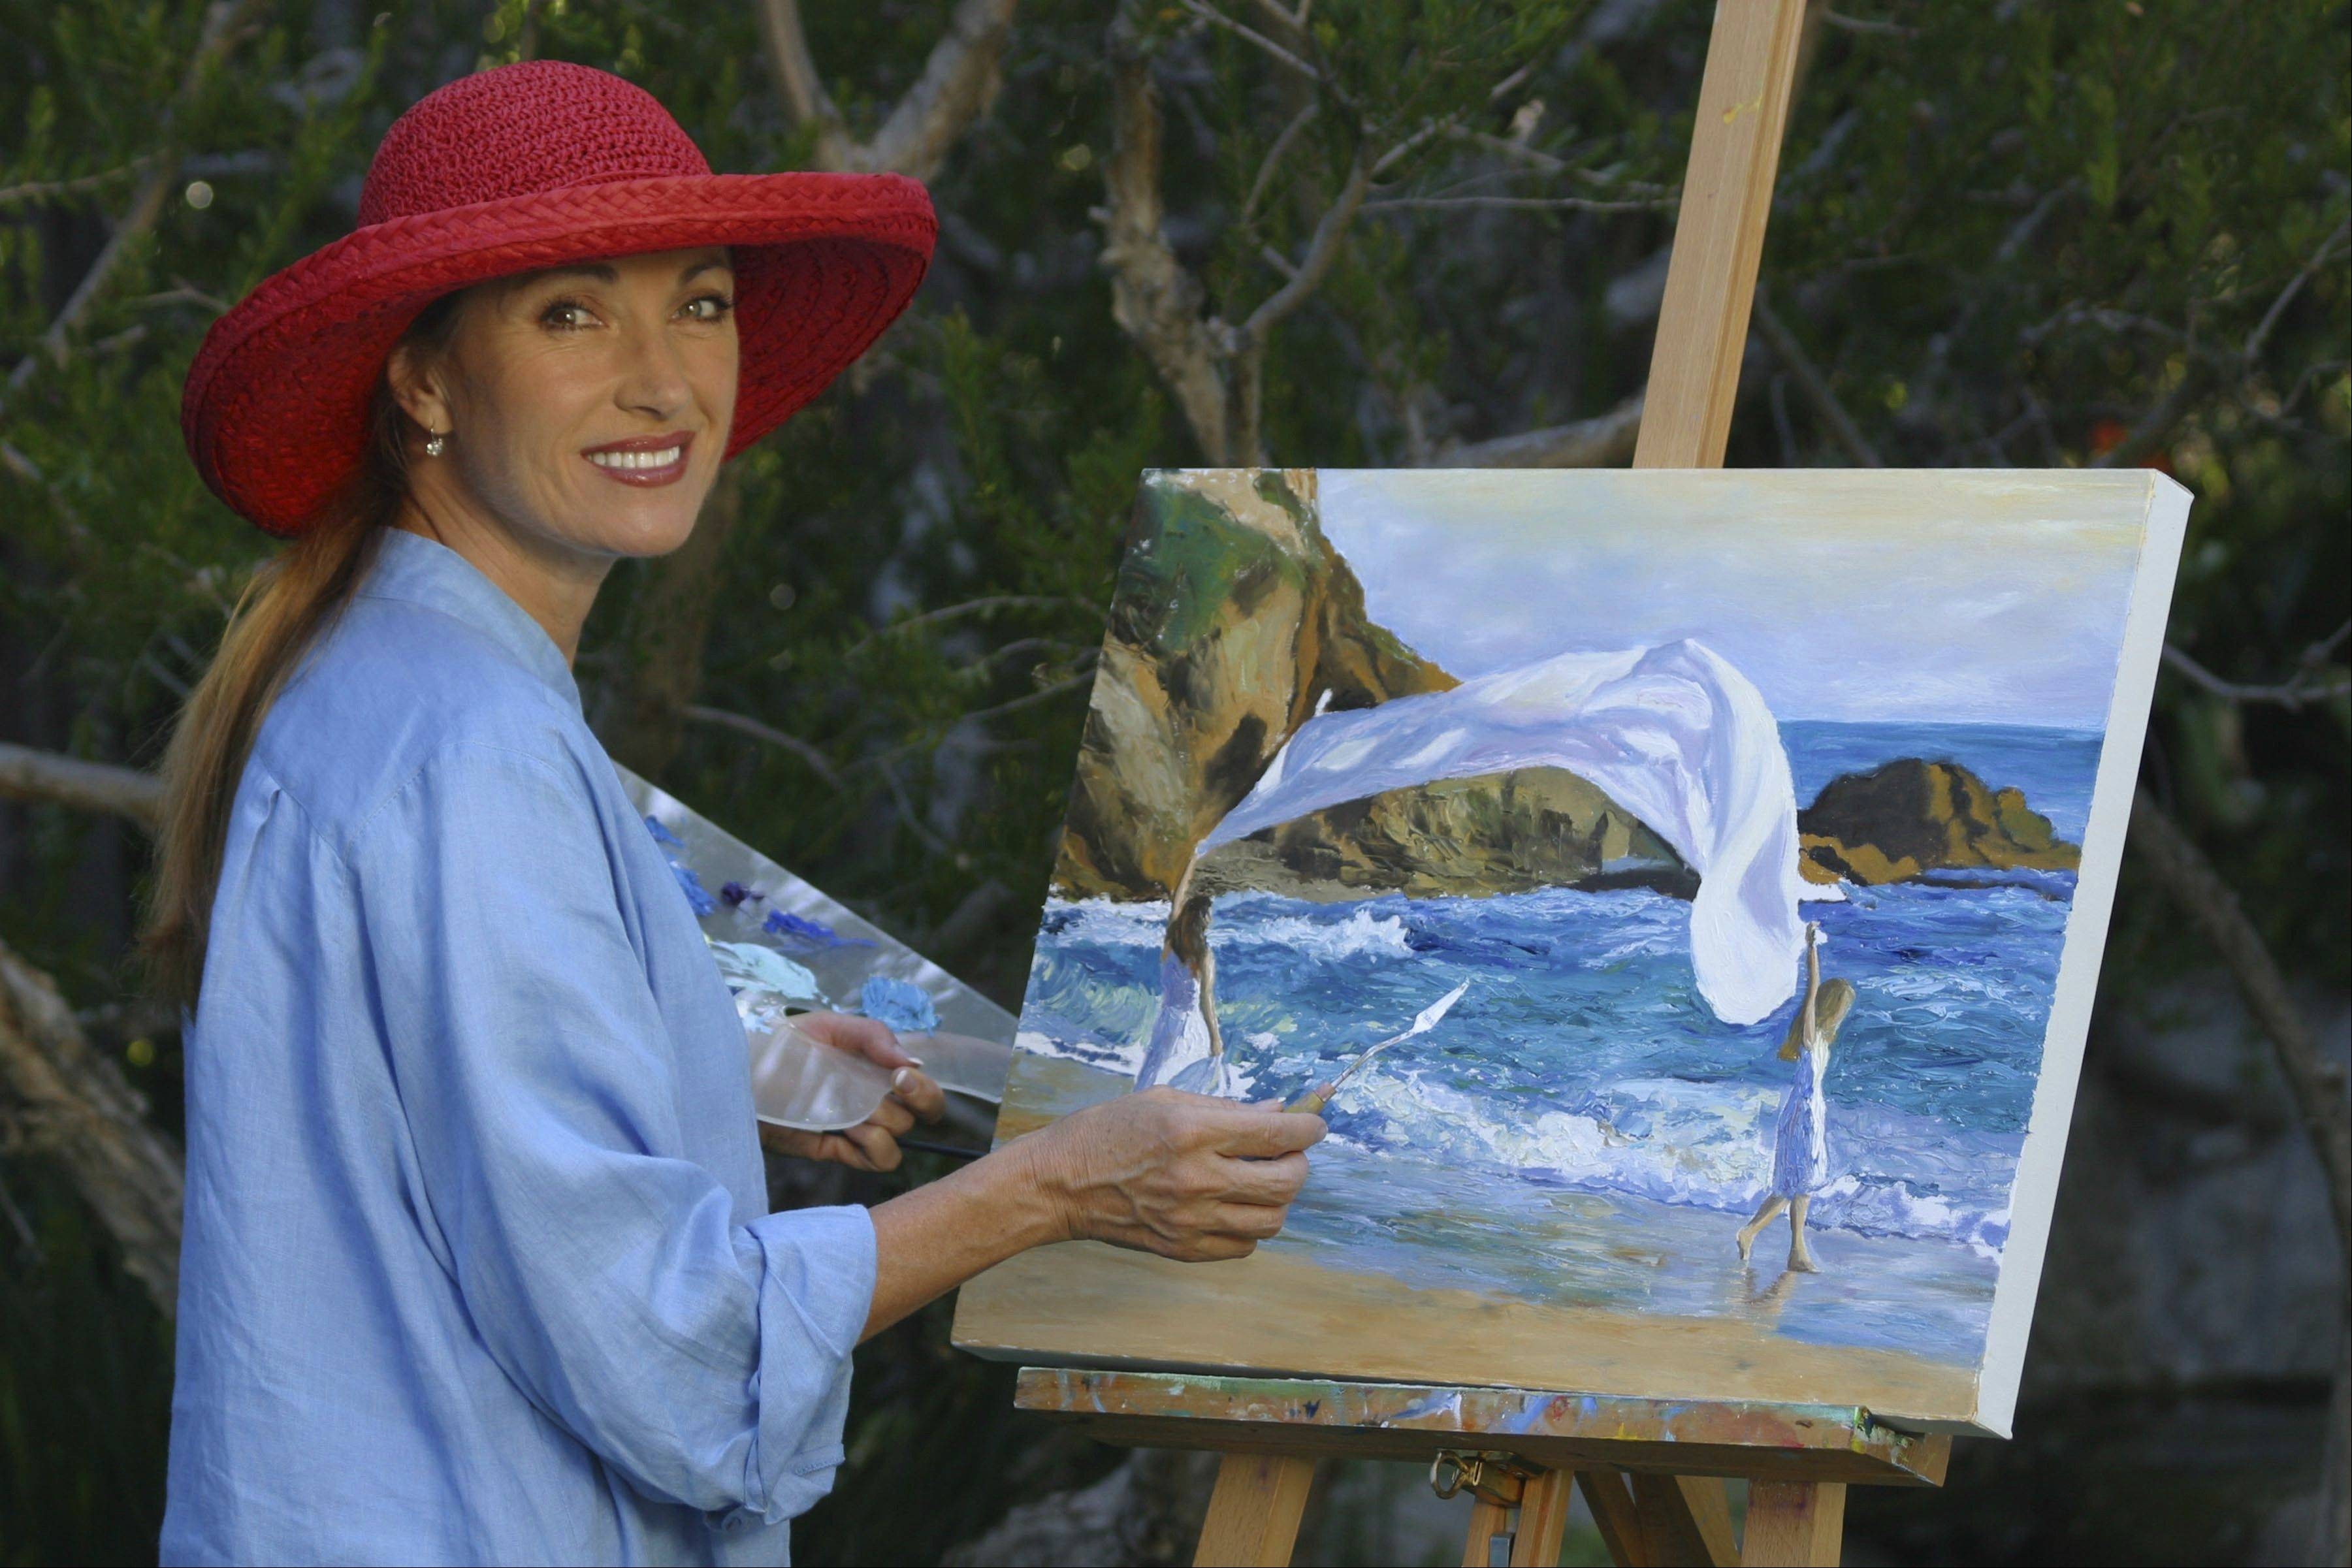 Actress and artist Jane Seymour will be on hand for a showing of her work at the Wentworth Gallery in Schaumburg.